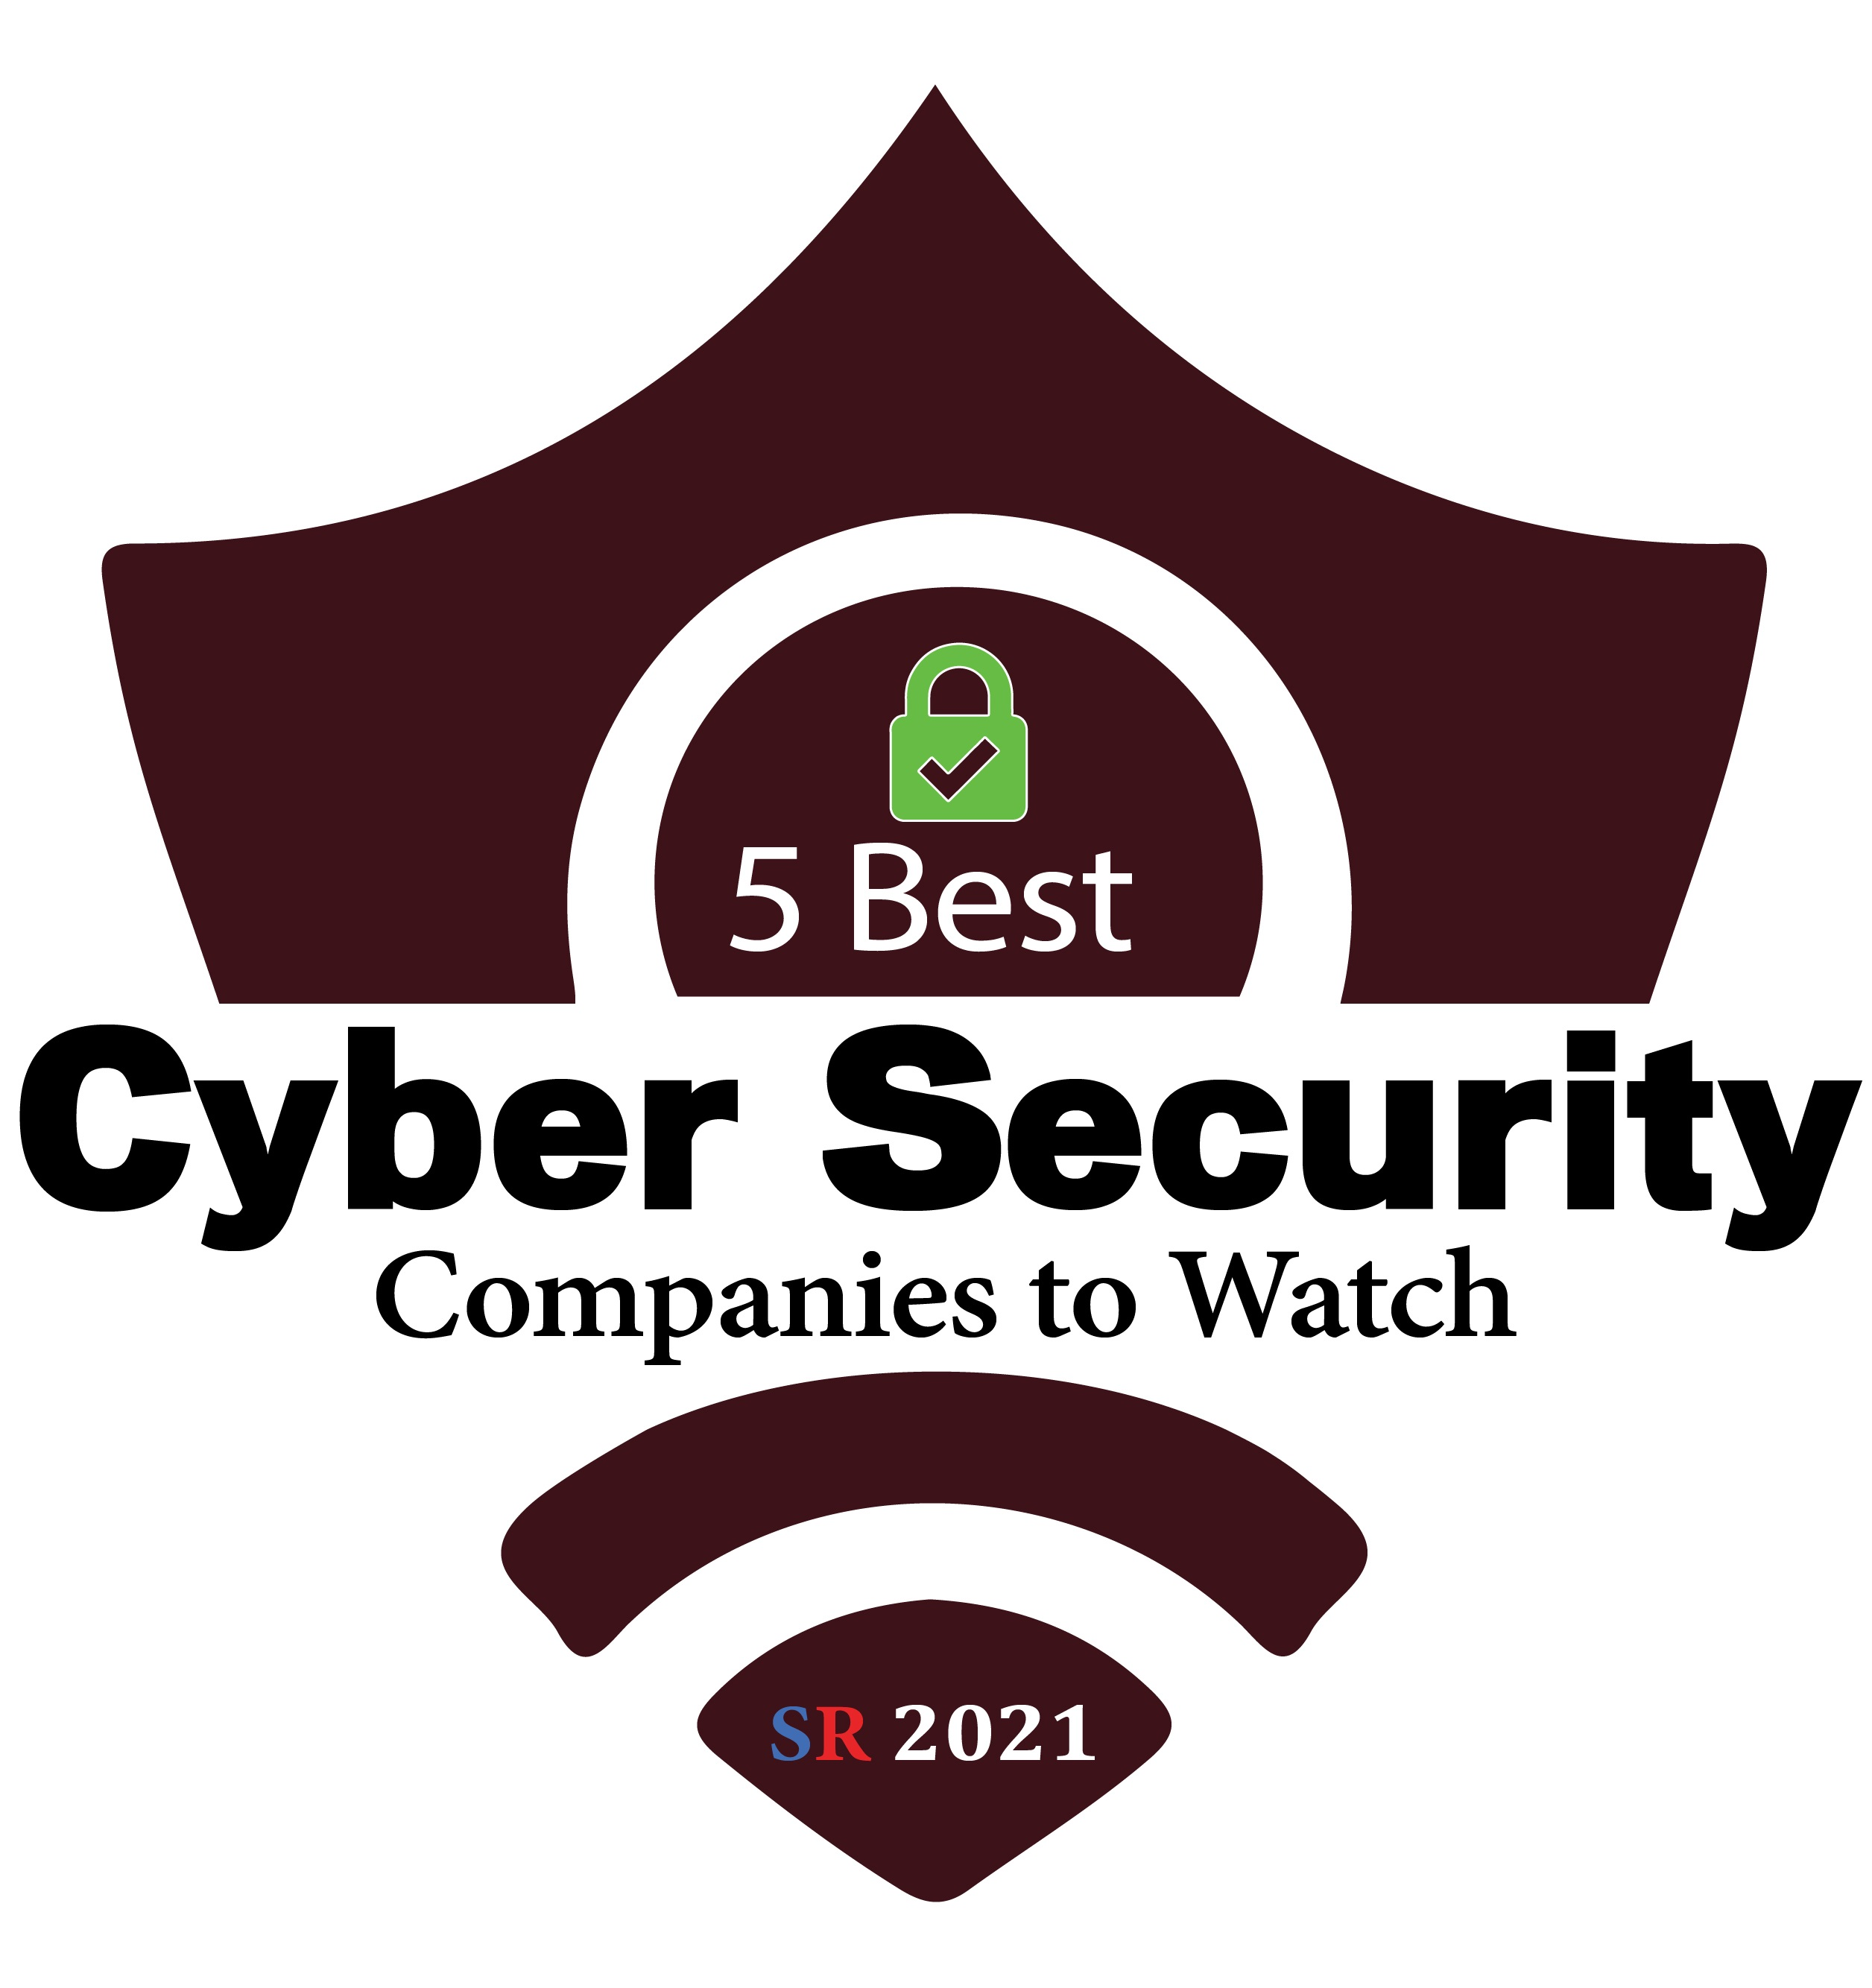 Central InfoSec Cyber Security Top 5 Cyber Security Consulting Company